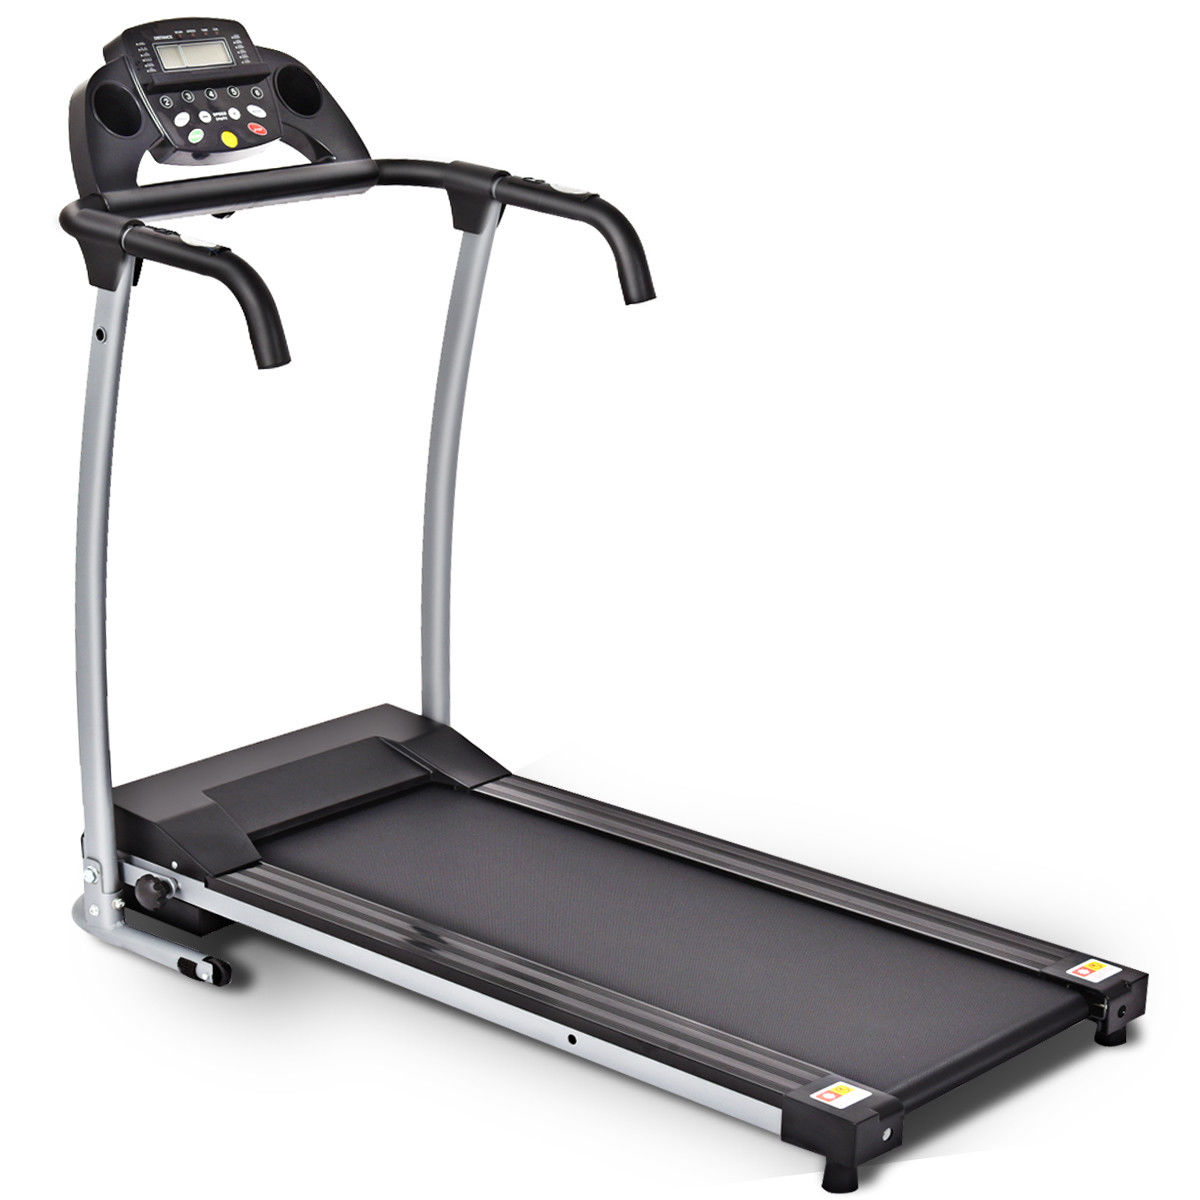 Costway 800W Folding Treadmill Electric Portable Motorized Power Running Fitness Machine w/support